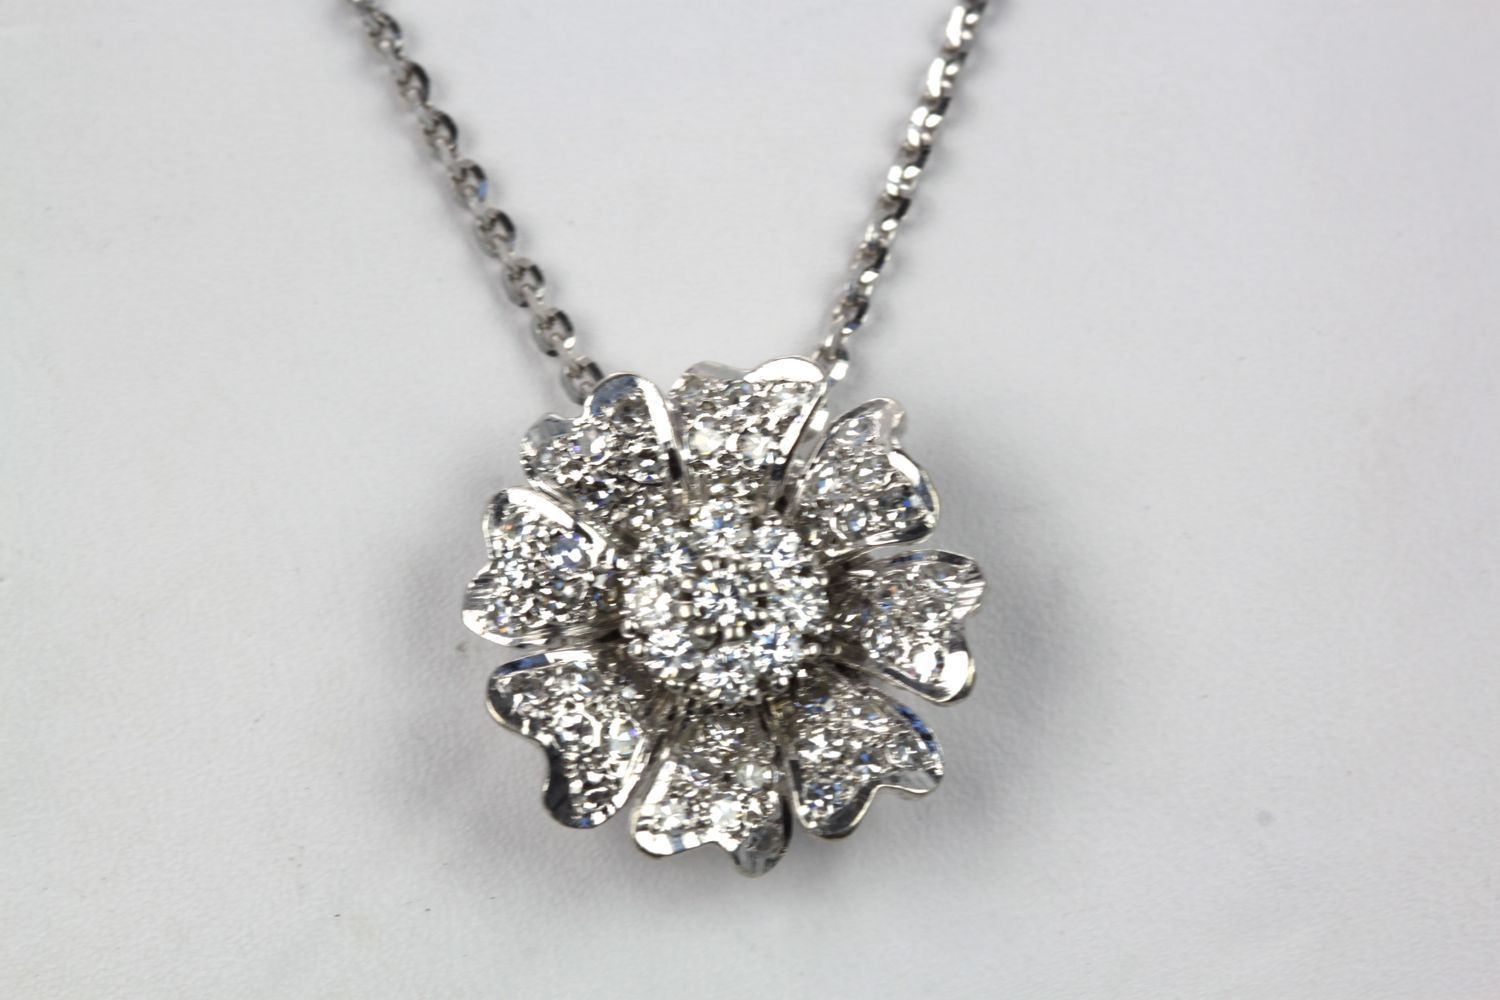 Diamond flower pendant 14k white gold slide on 18k white gold chain diamond flower pendant mozeypictures